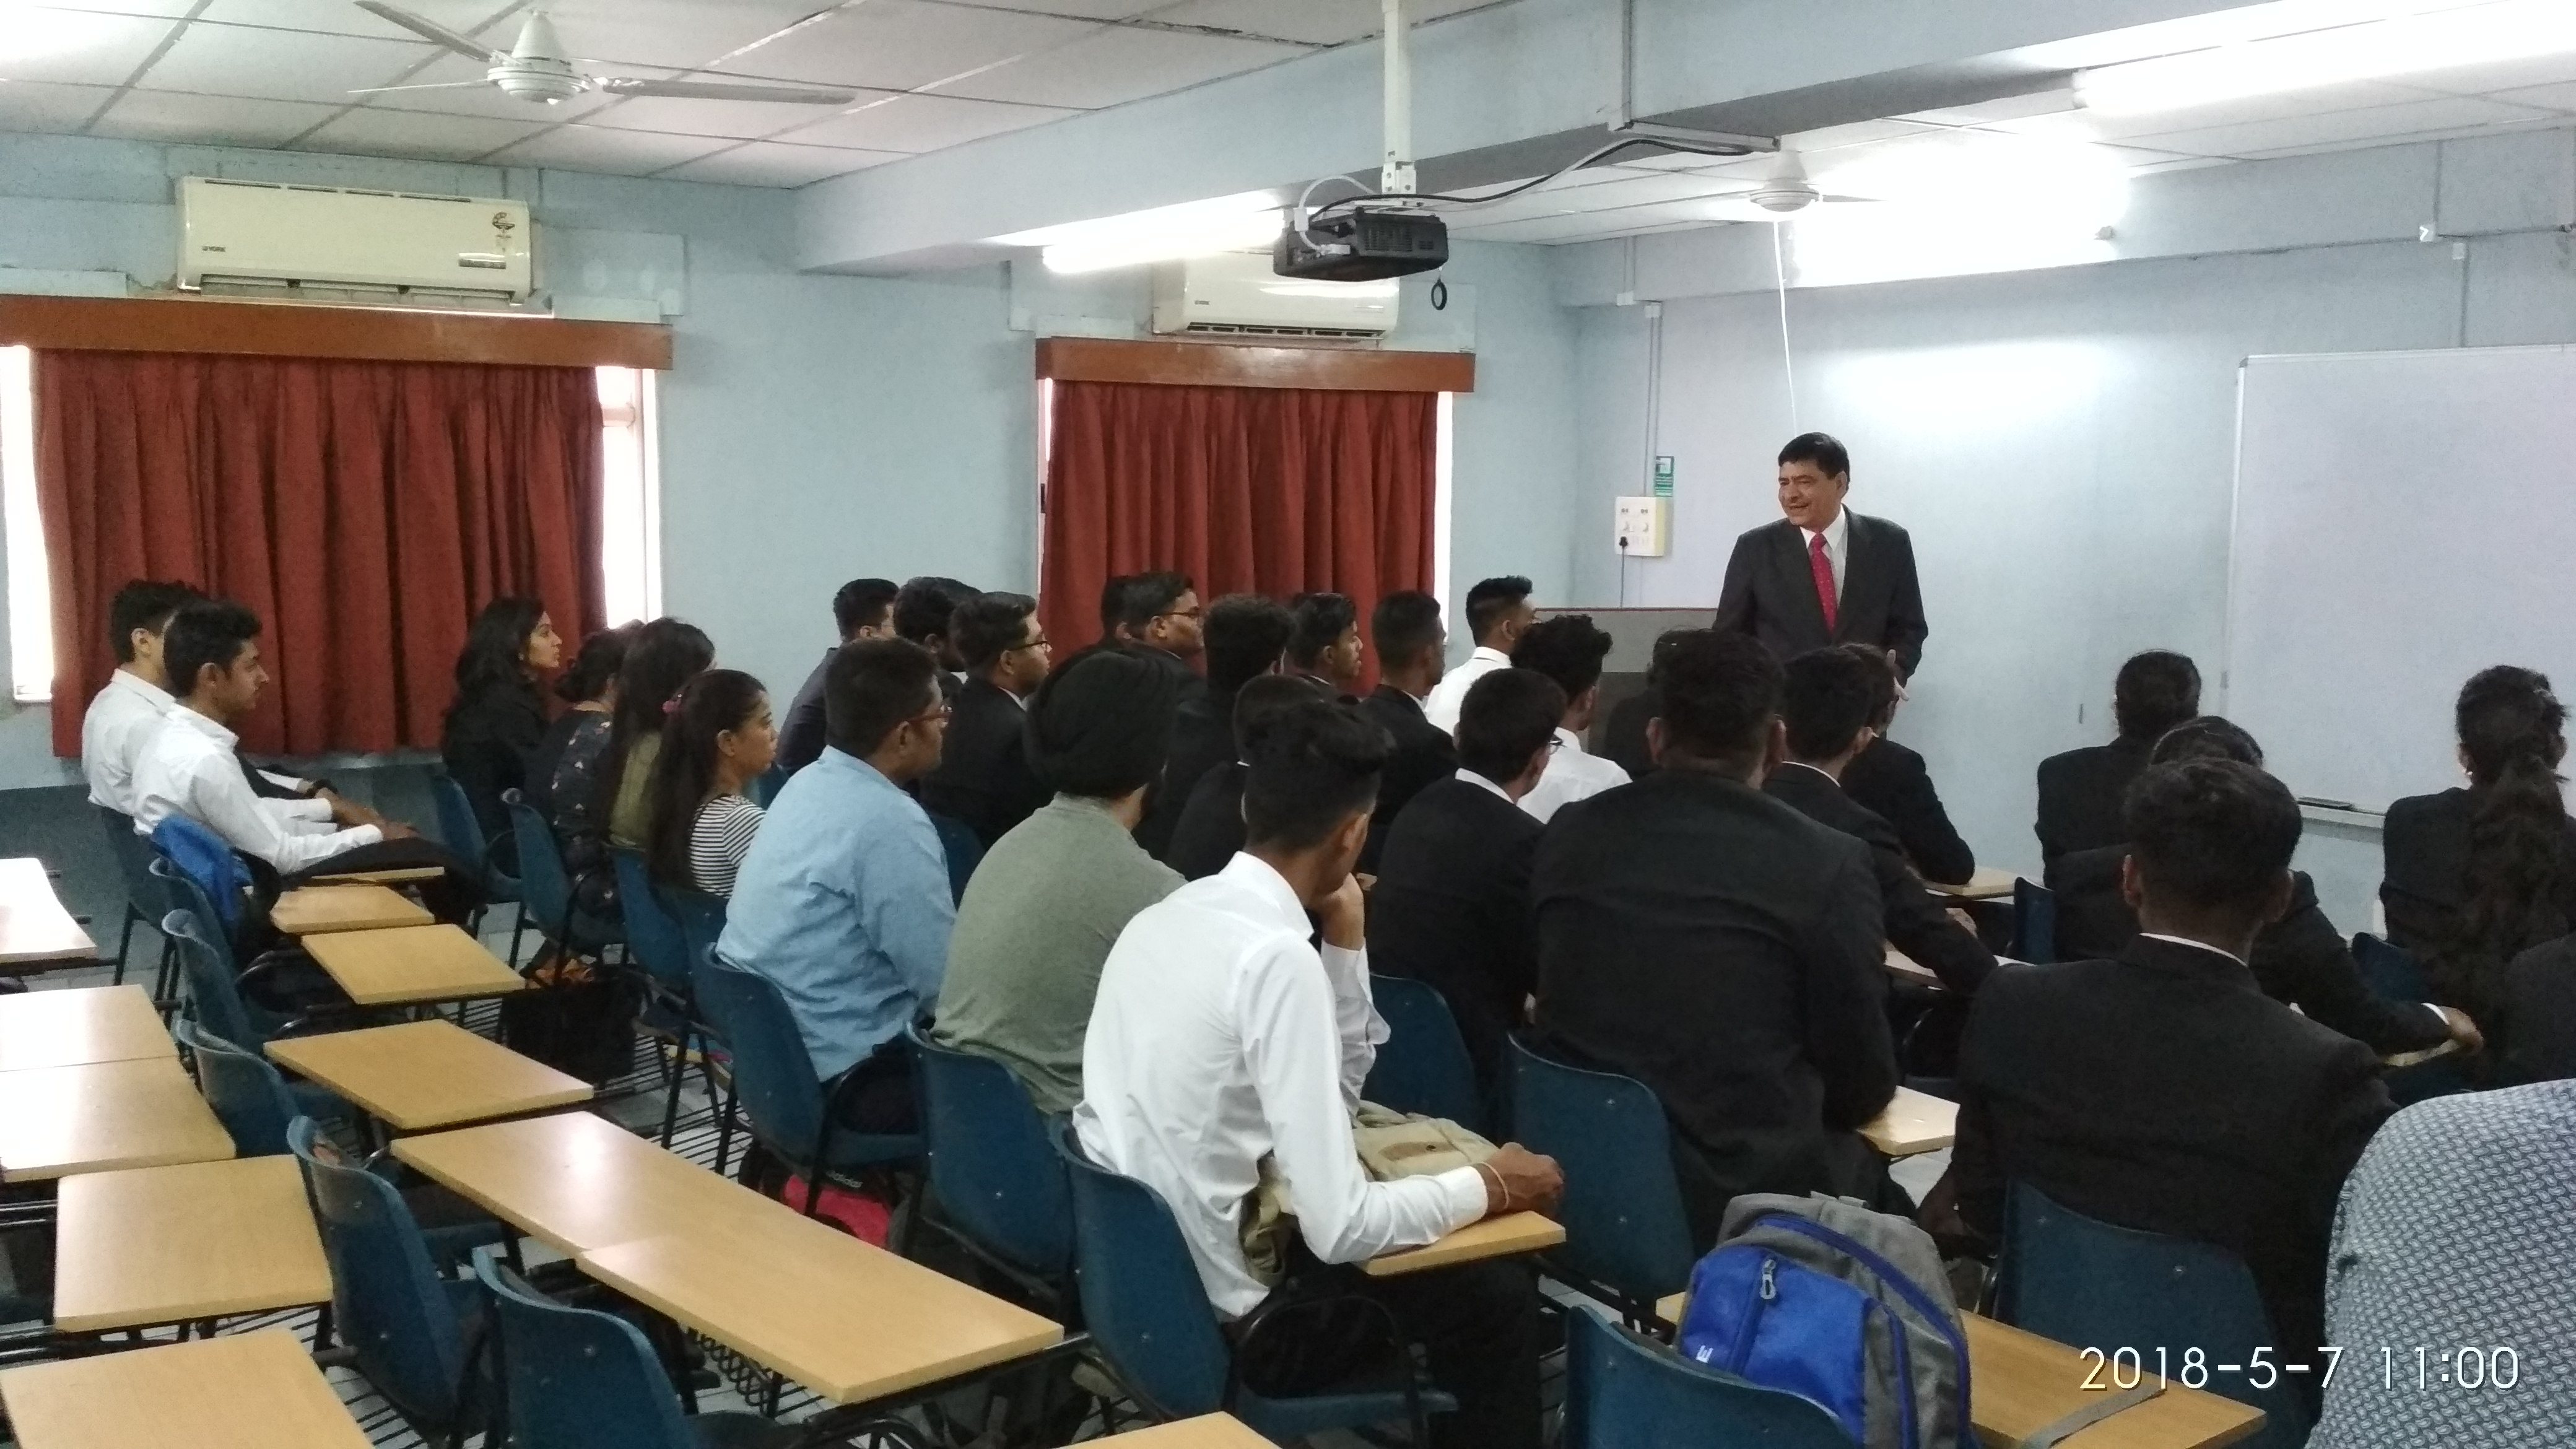 Guest lecture on Career development by Mr. P. K. Vaid GM of Lion Lords Inn, Rajula